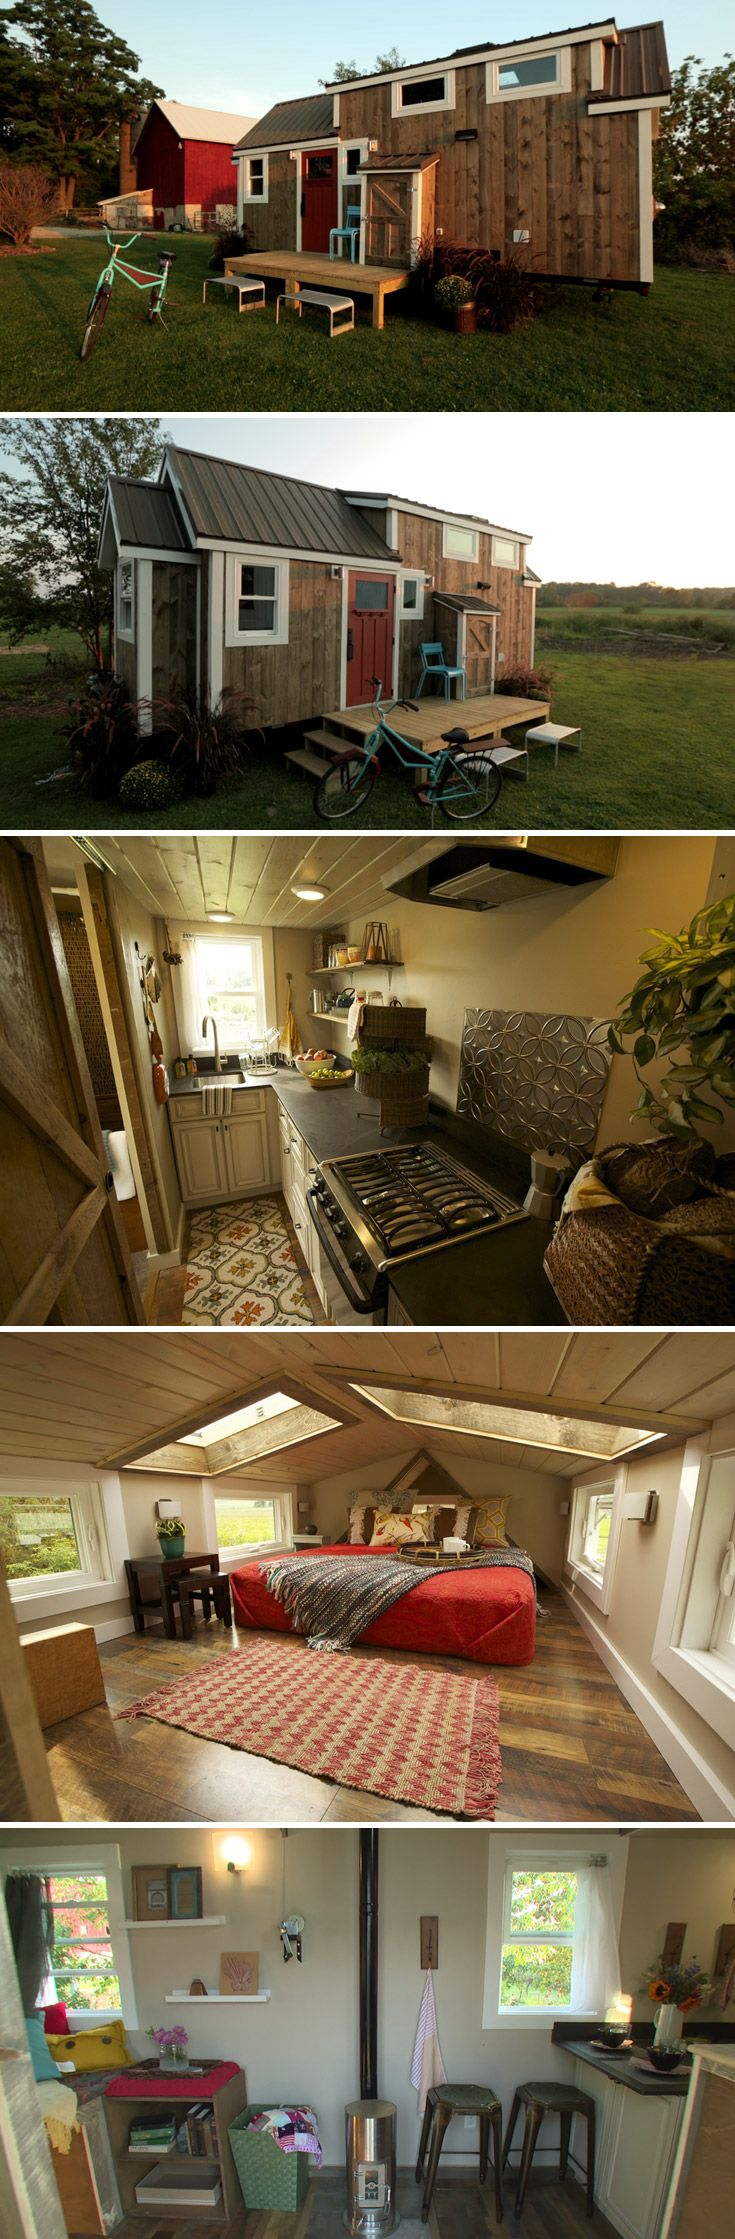 The Watertown by Wishbone Tiny Homes is an 8'x24′ custom tiny home on wheels, originally built for an episode of Tiny House Nation.